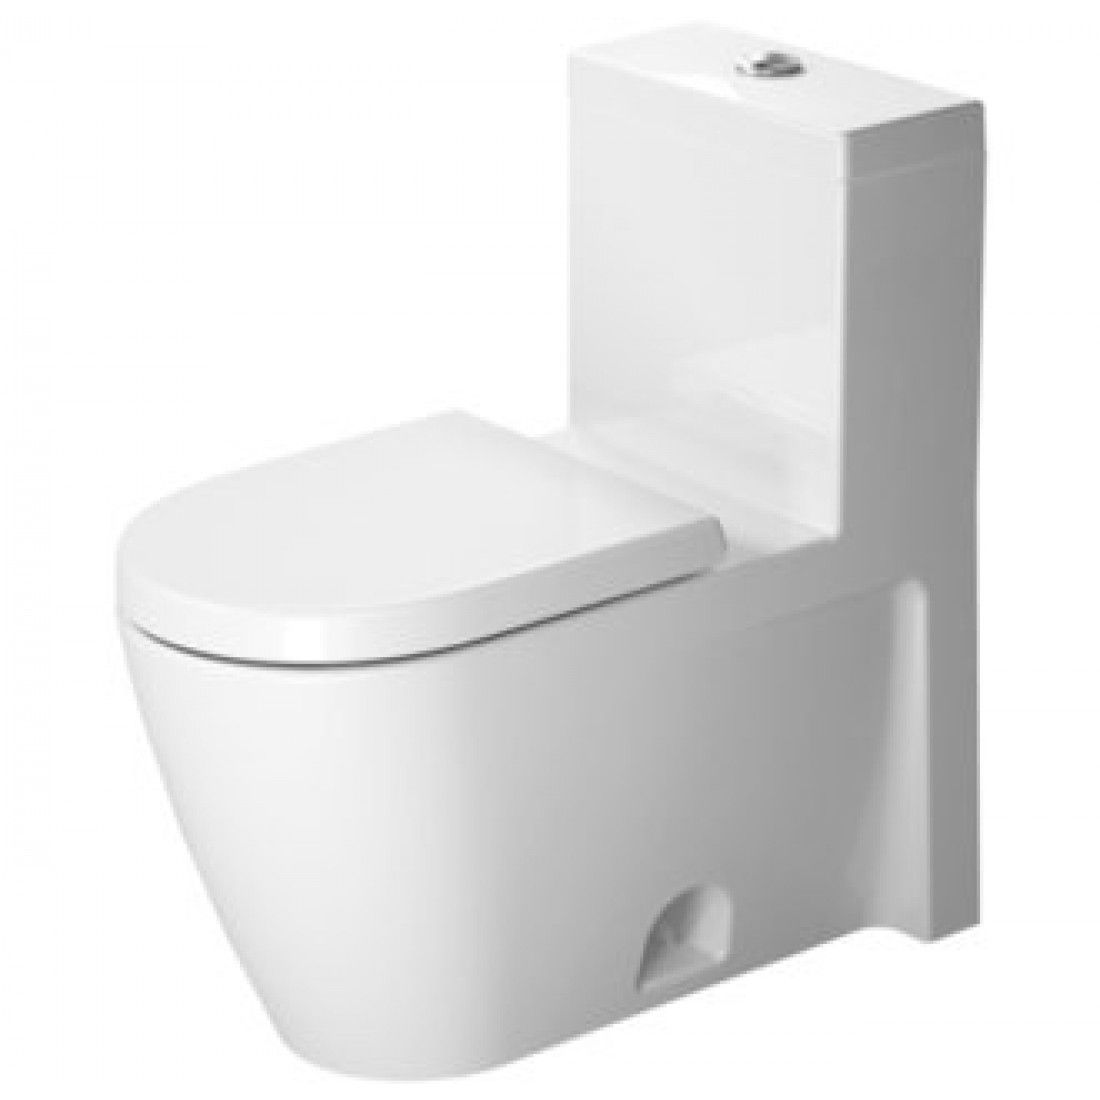 Duravit White Starck 2 Toilet One Piece Without Seat Modern Toilet Modern Bathroom Decor One Piece Toilets